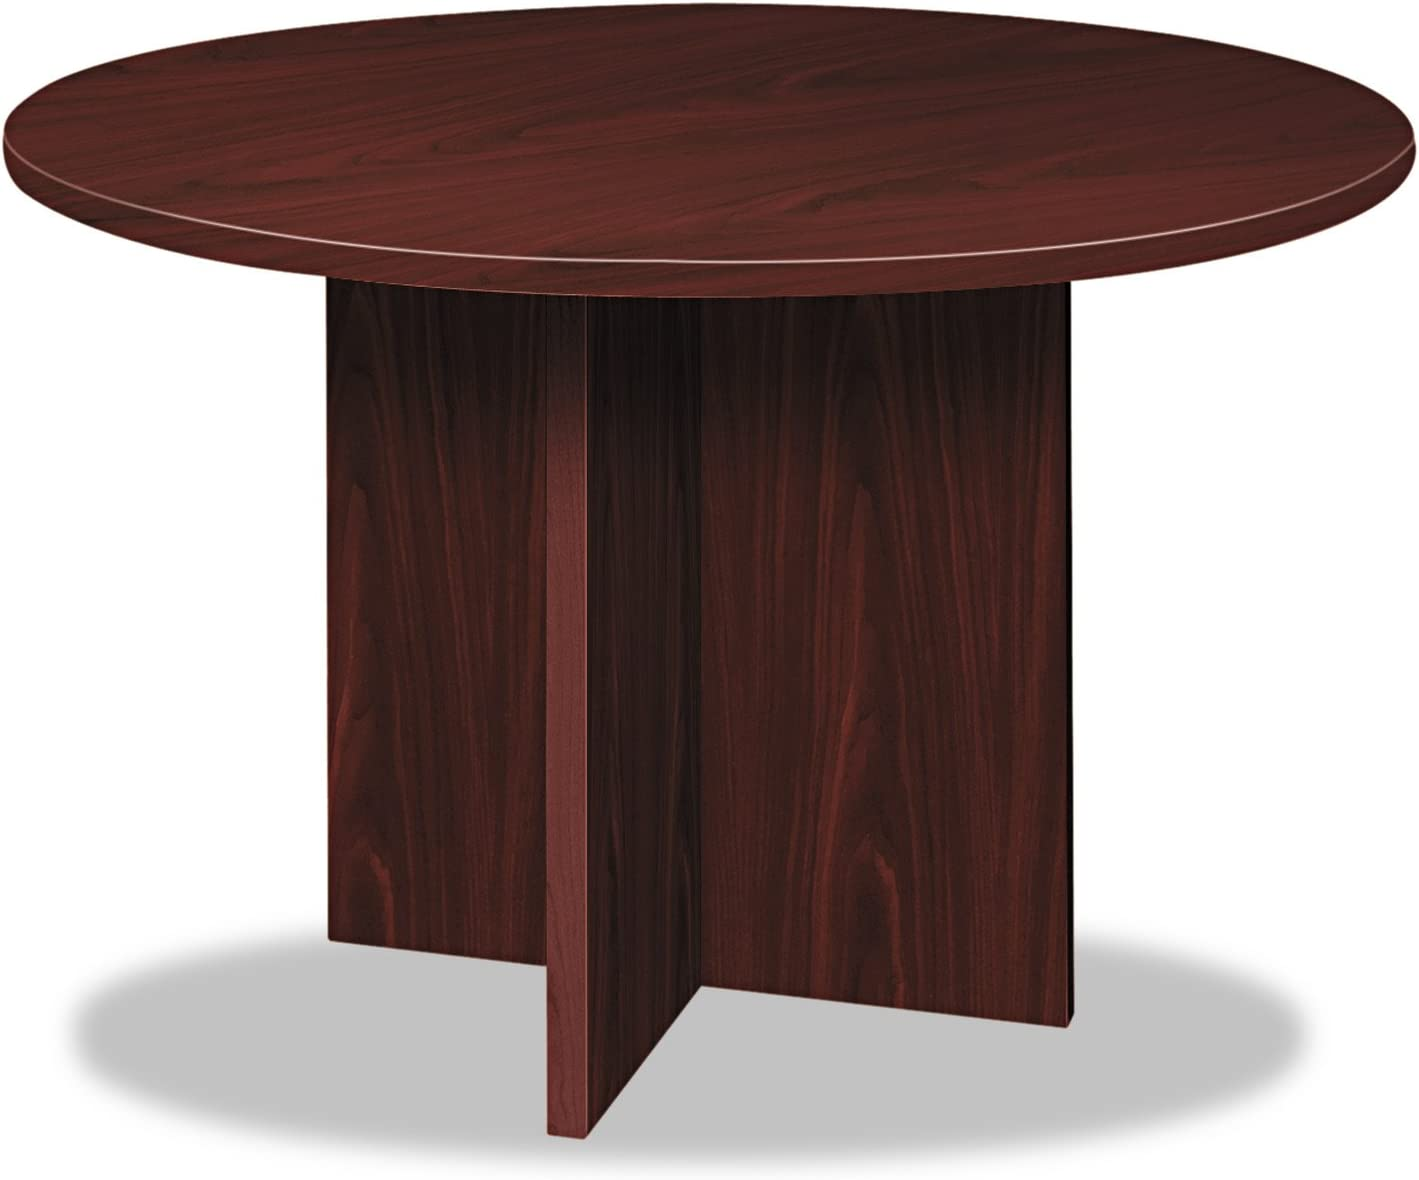 basyx BL Laminate Series Round Conference Table, 48 by 29.5-Inch, Mahogany